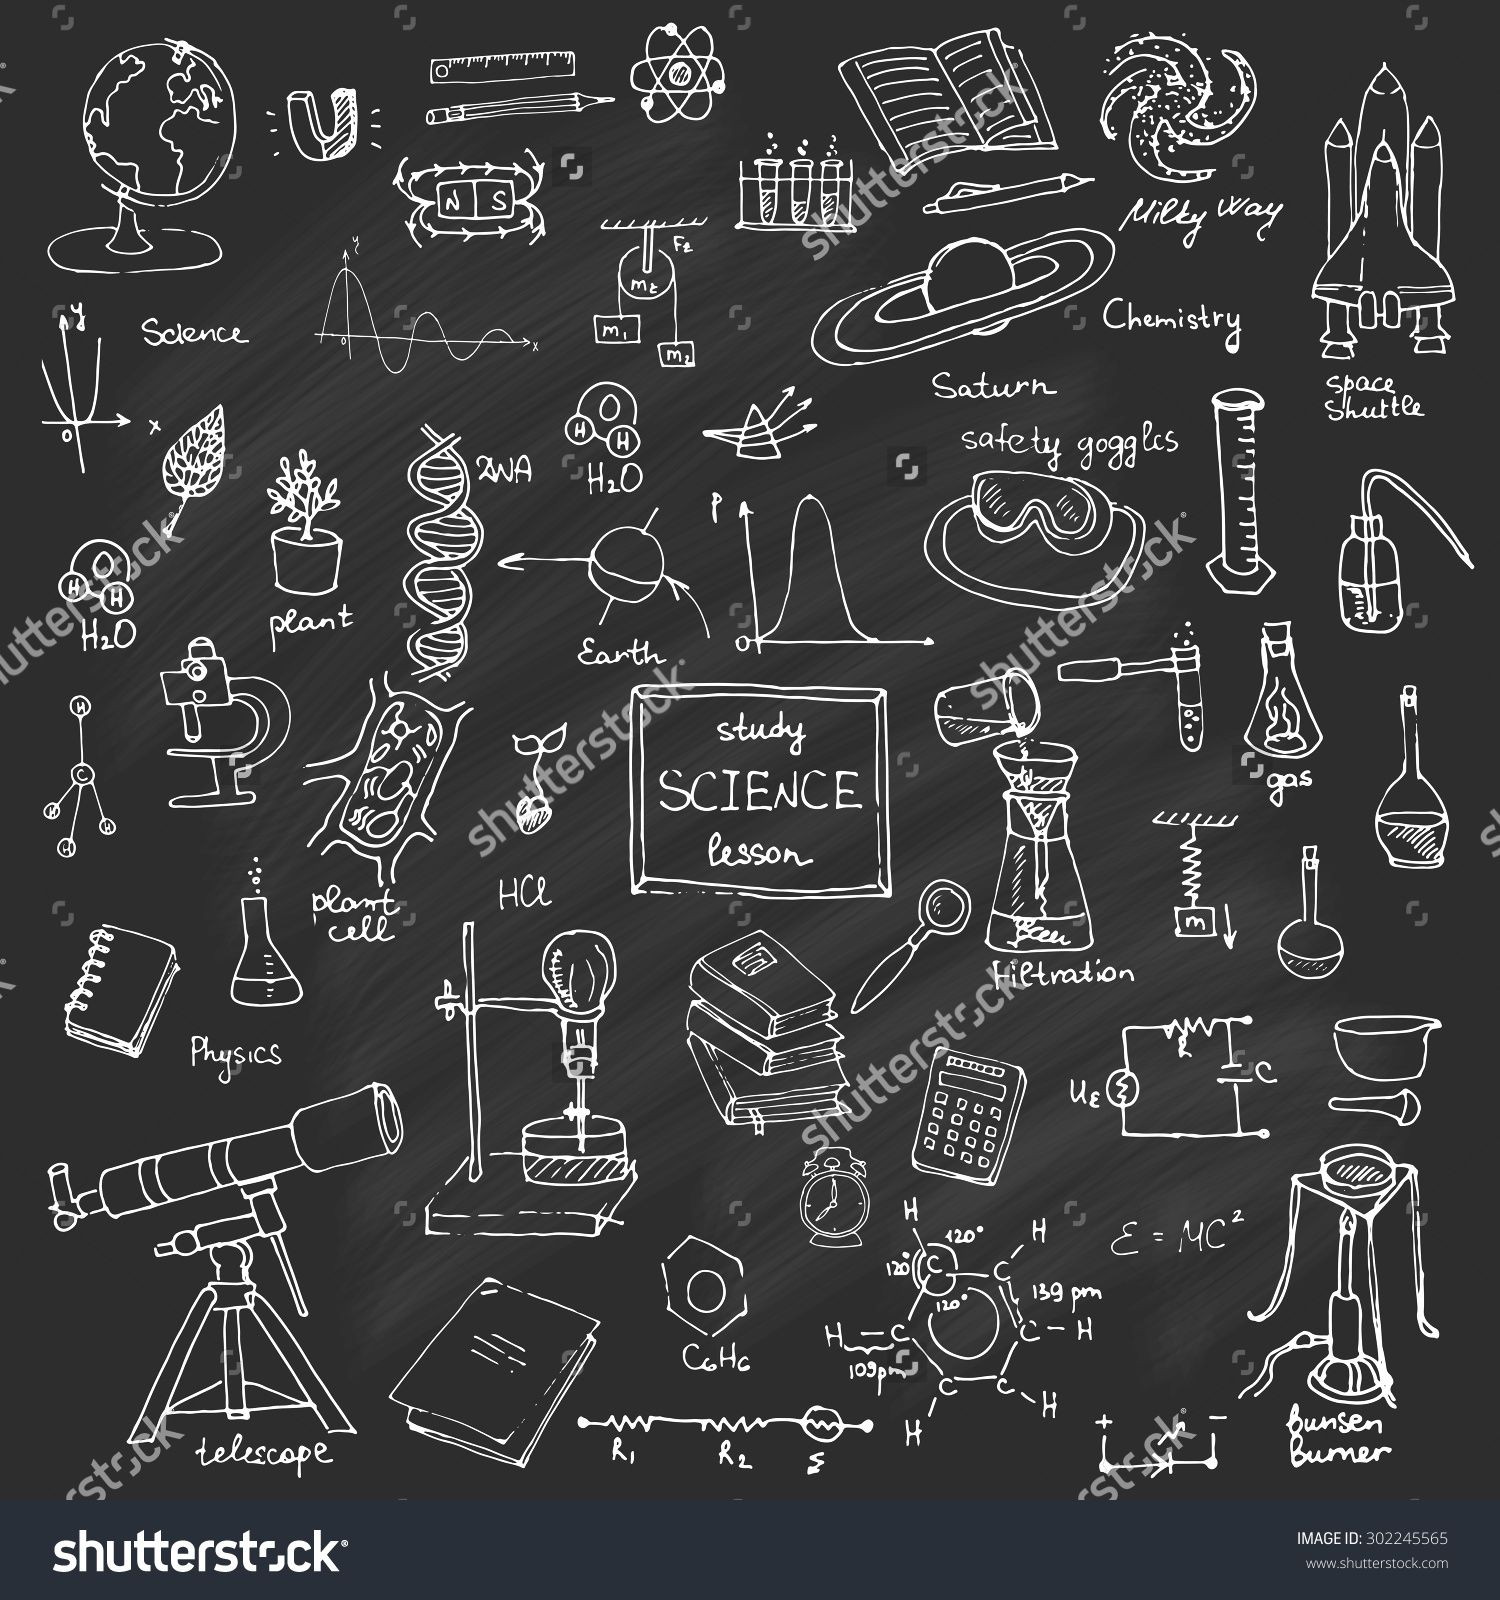 Freehand Drawing School Items Back To Science Theme Hand Green Circuit Board Modern Wall Clock By Robyriker Set Of Supplies Sketchy Doodles Vector Illustration